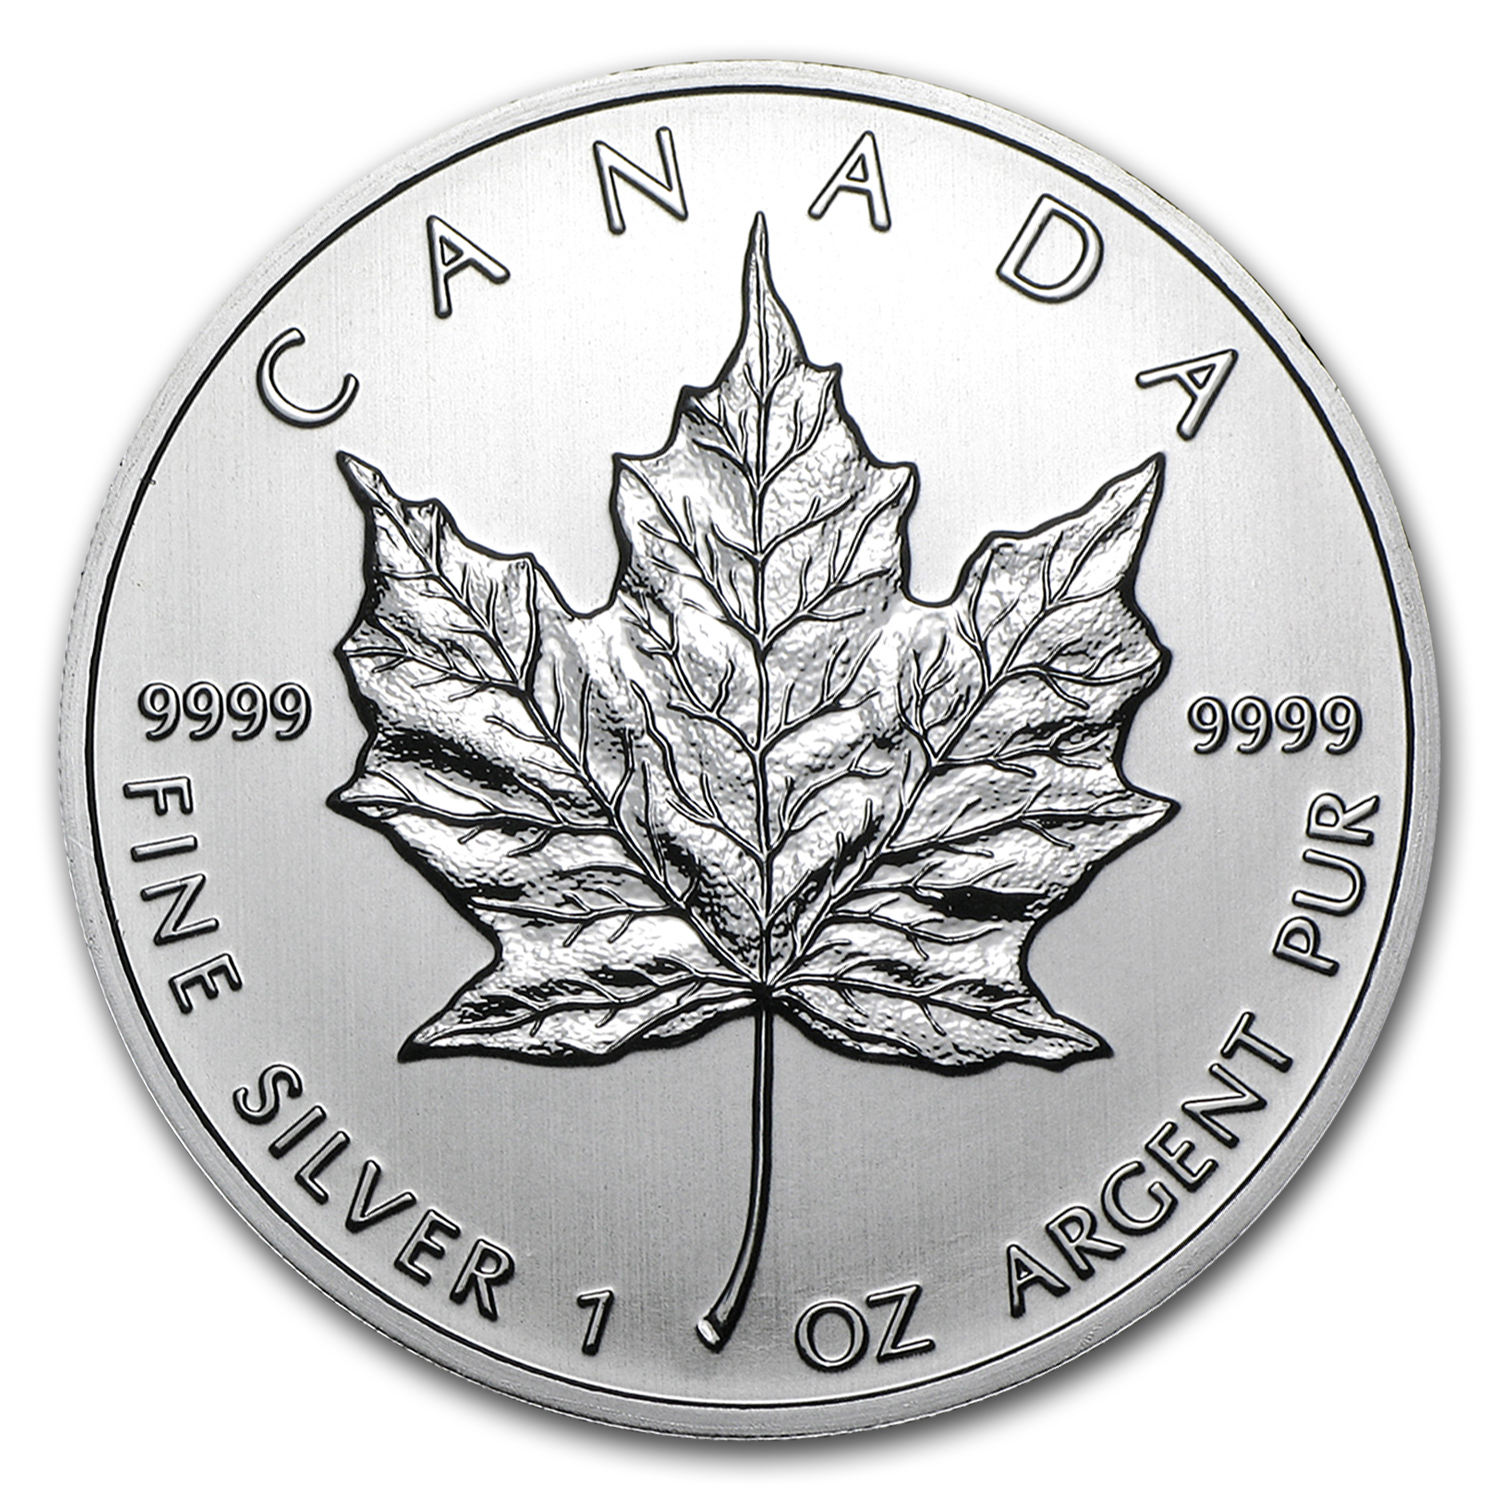 2012 1 oz Silver Canadian Maple Leaf BU